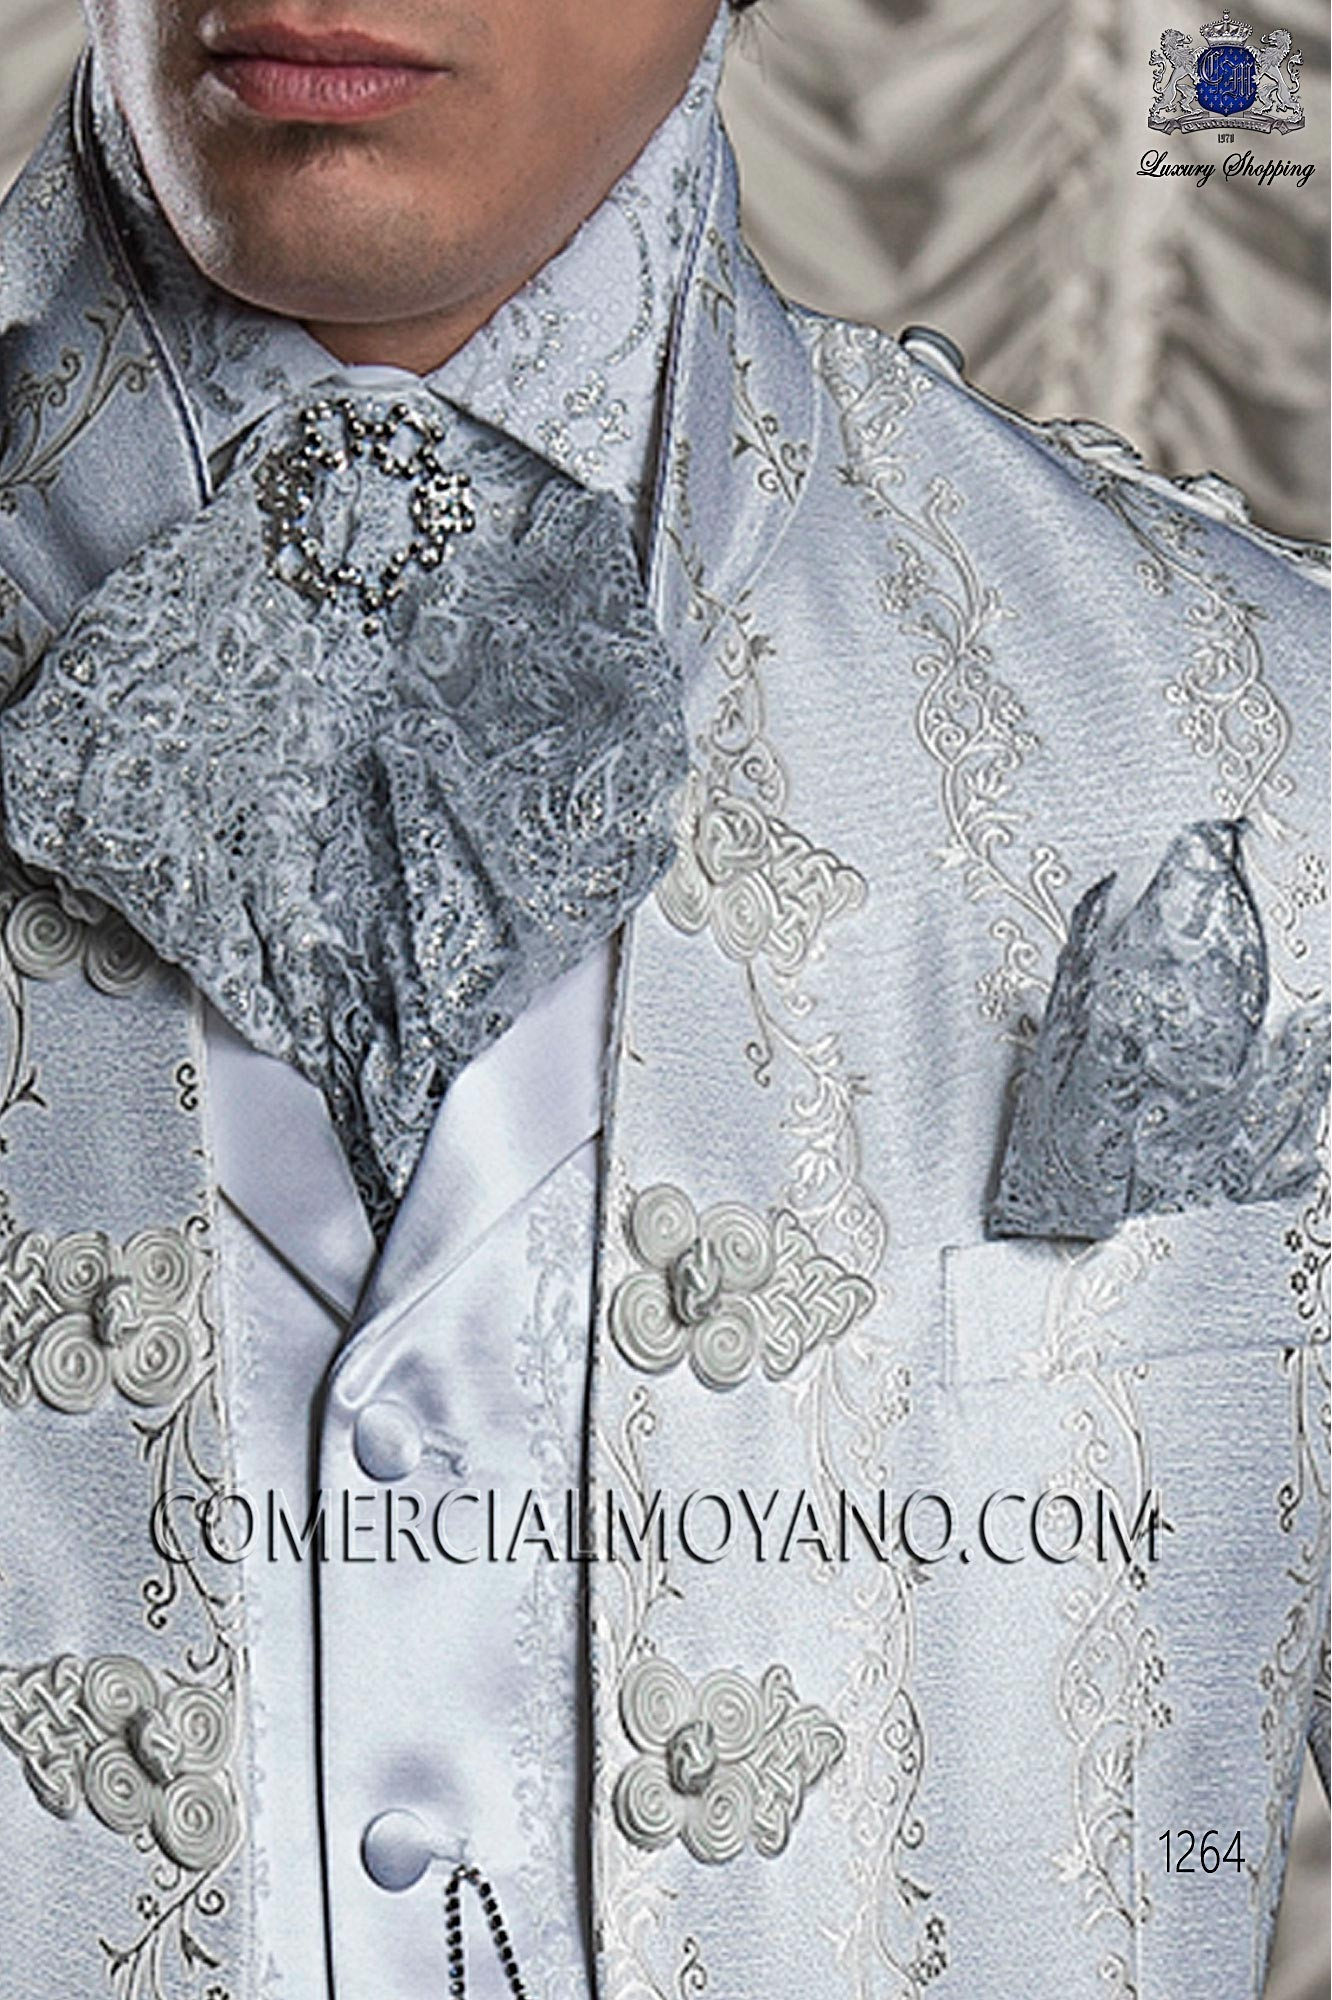 White jacquard shirt with silver lace, baroque collection Ottavio ...